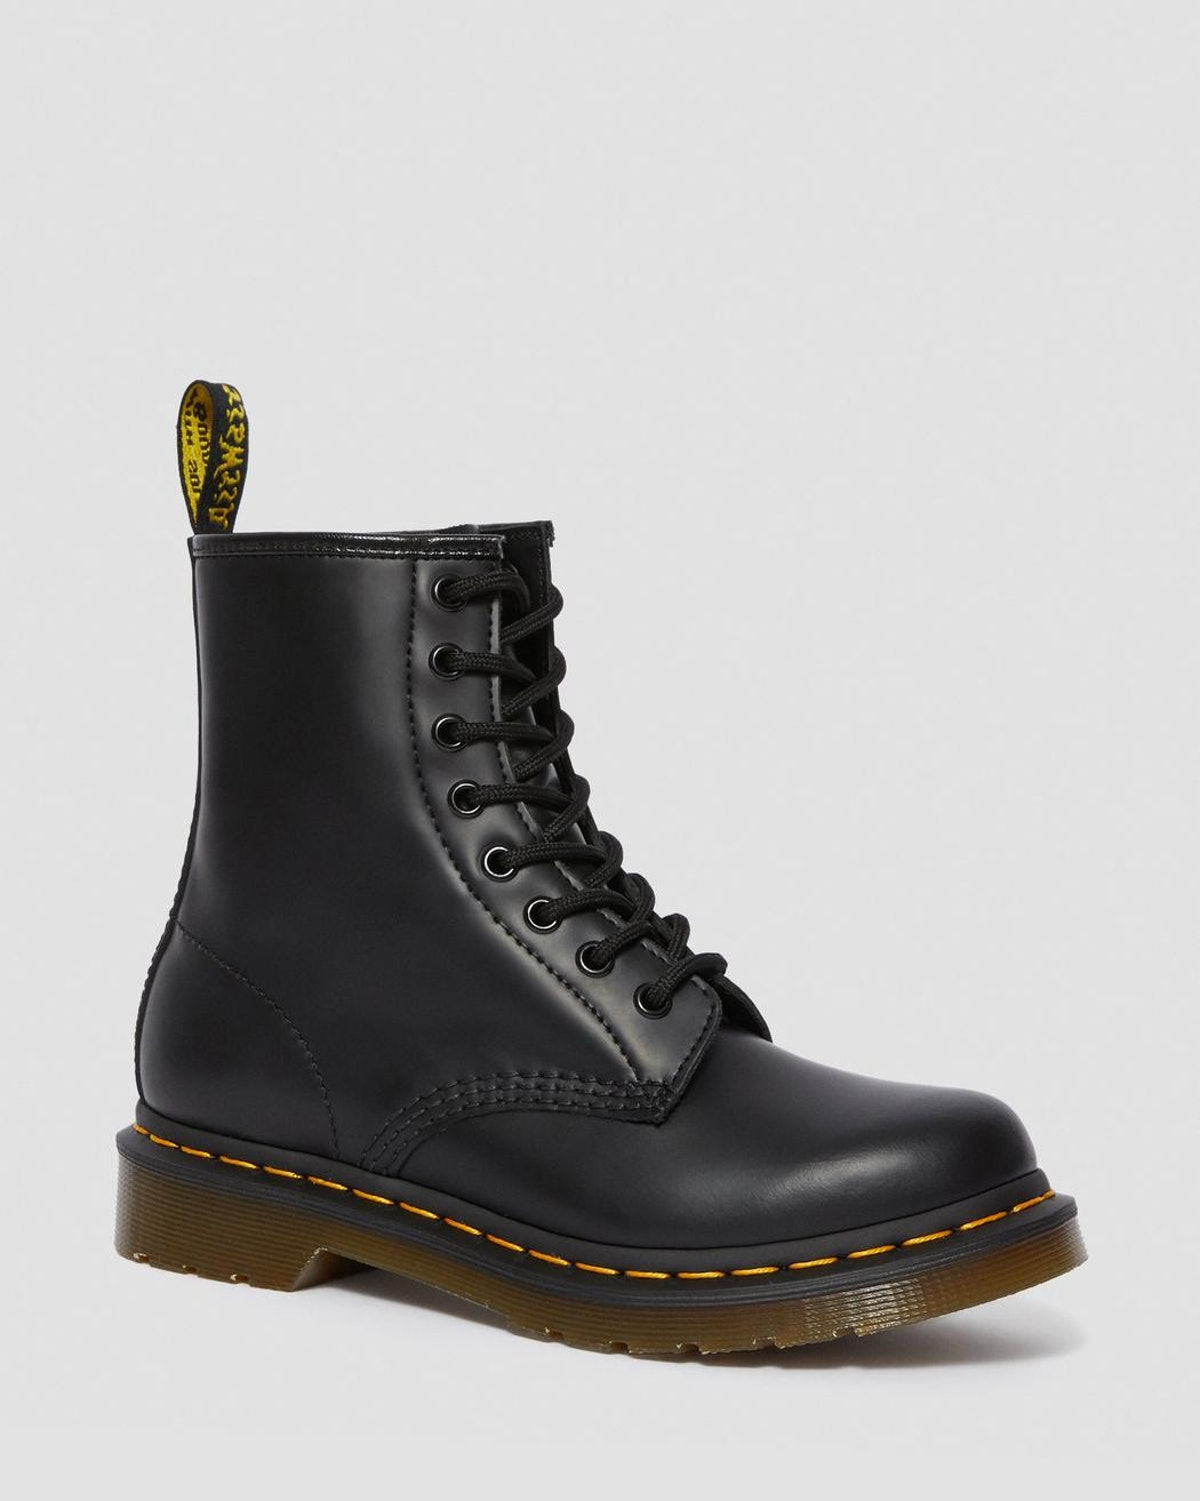 Women's 1460 Smooth Black Boots